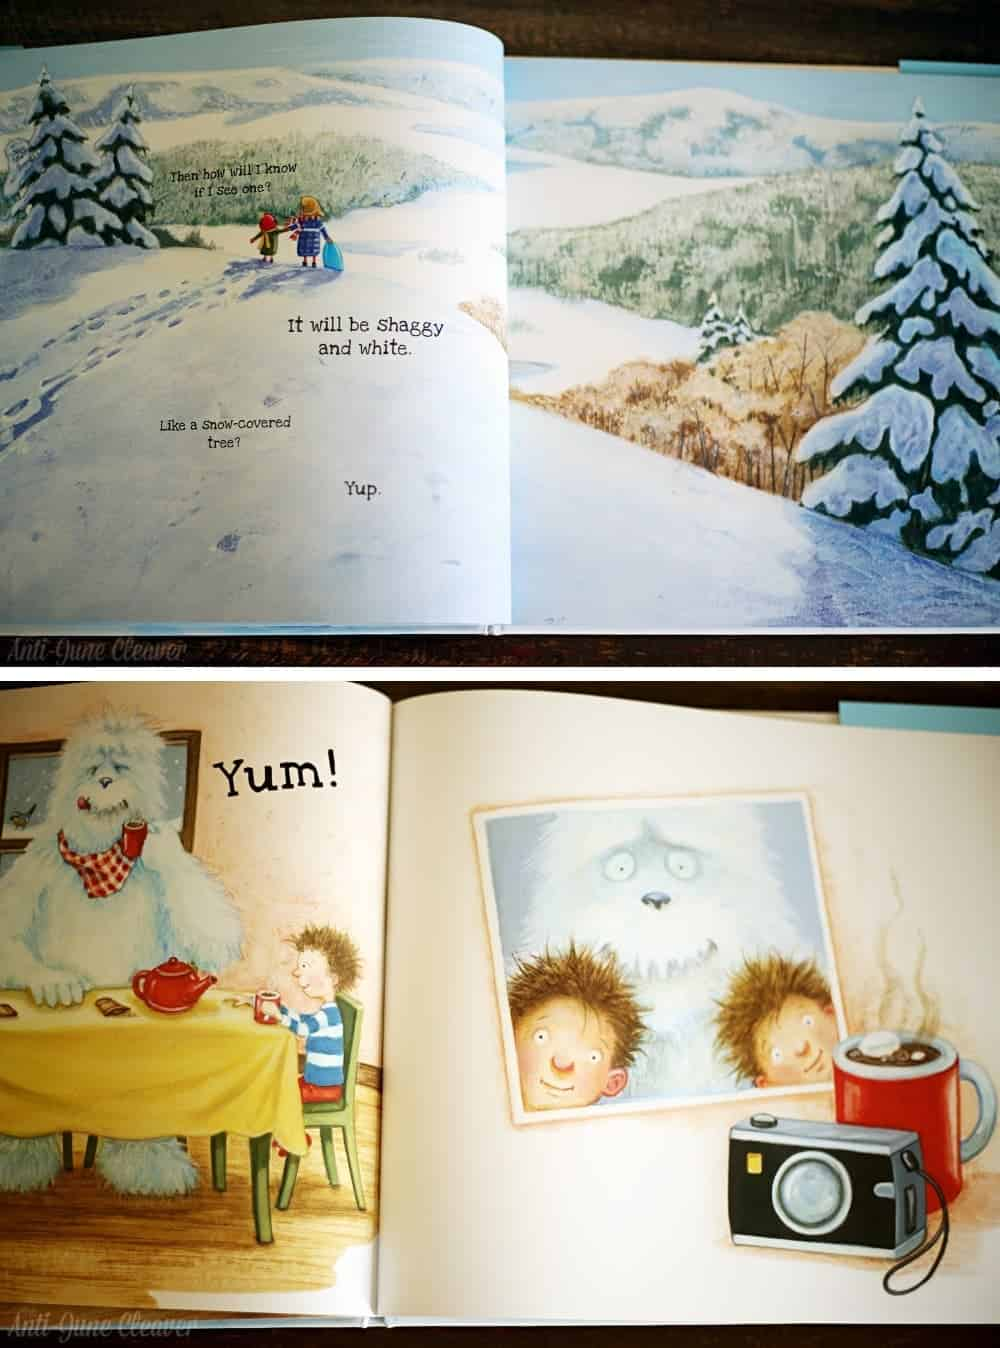 Holiday Gift Guide: Children's Books from Peter Pauper Press - No Yeti Yet